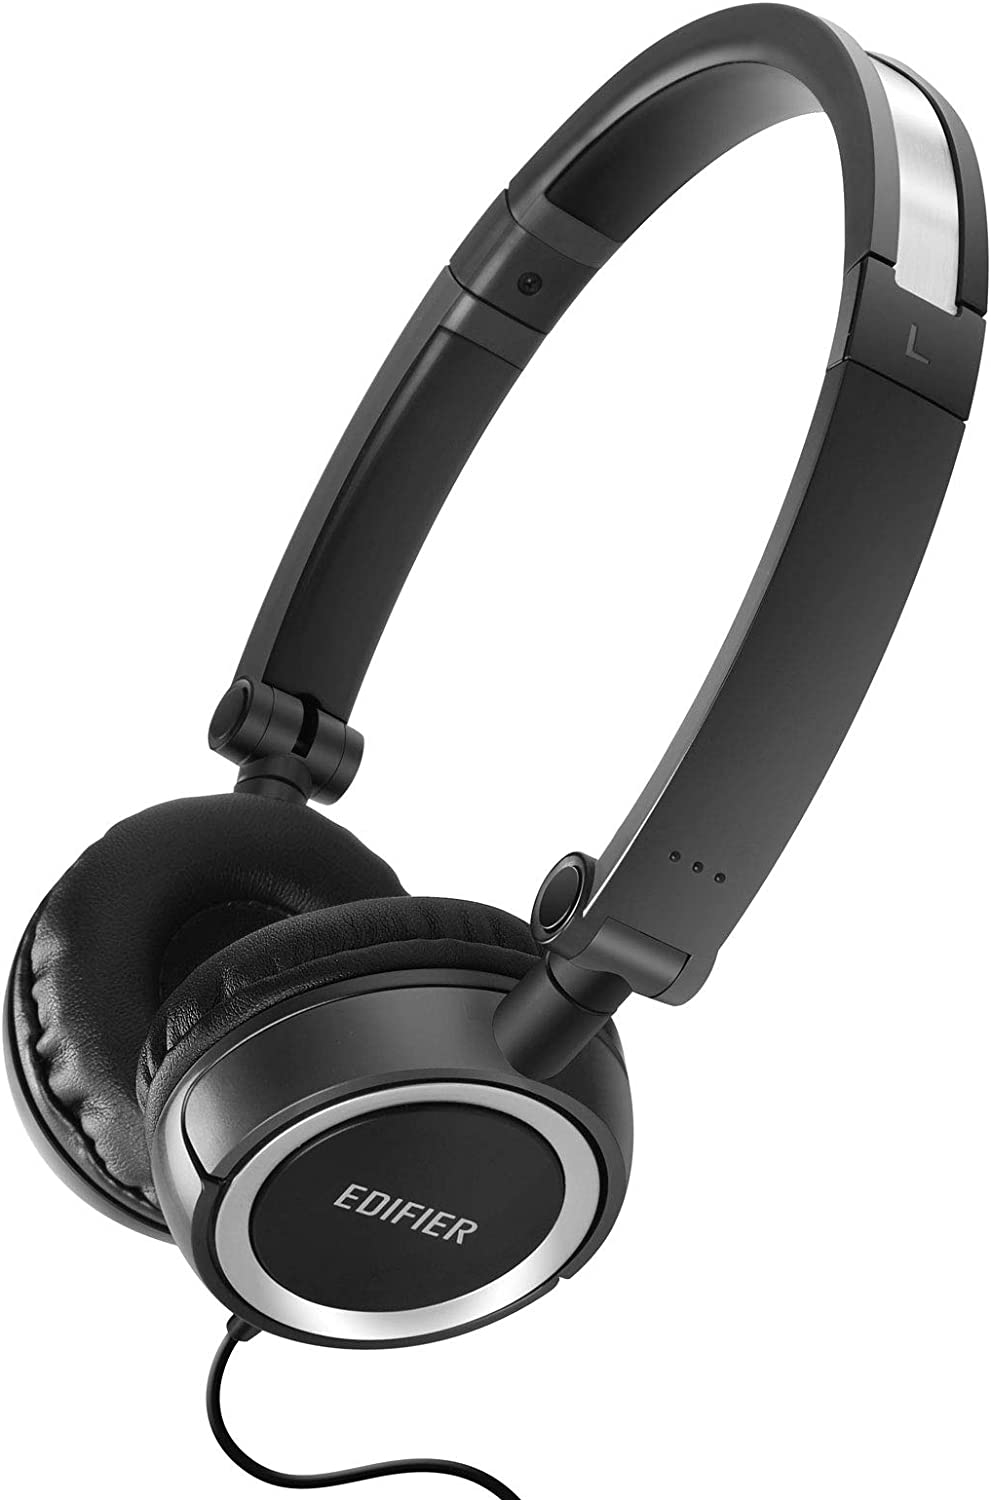 Edifier H650 Headphones - Hi-Fi On-Ear Wired Stereo Headphone, Ultralight and Fold-able - Black